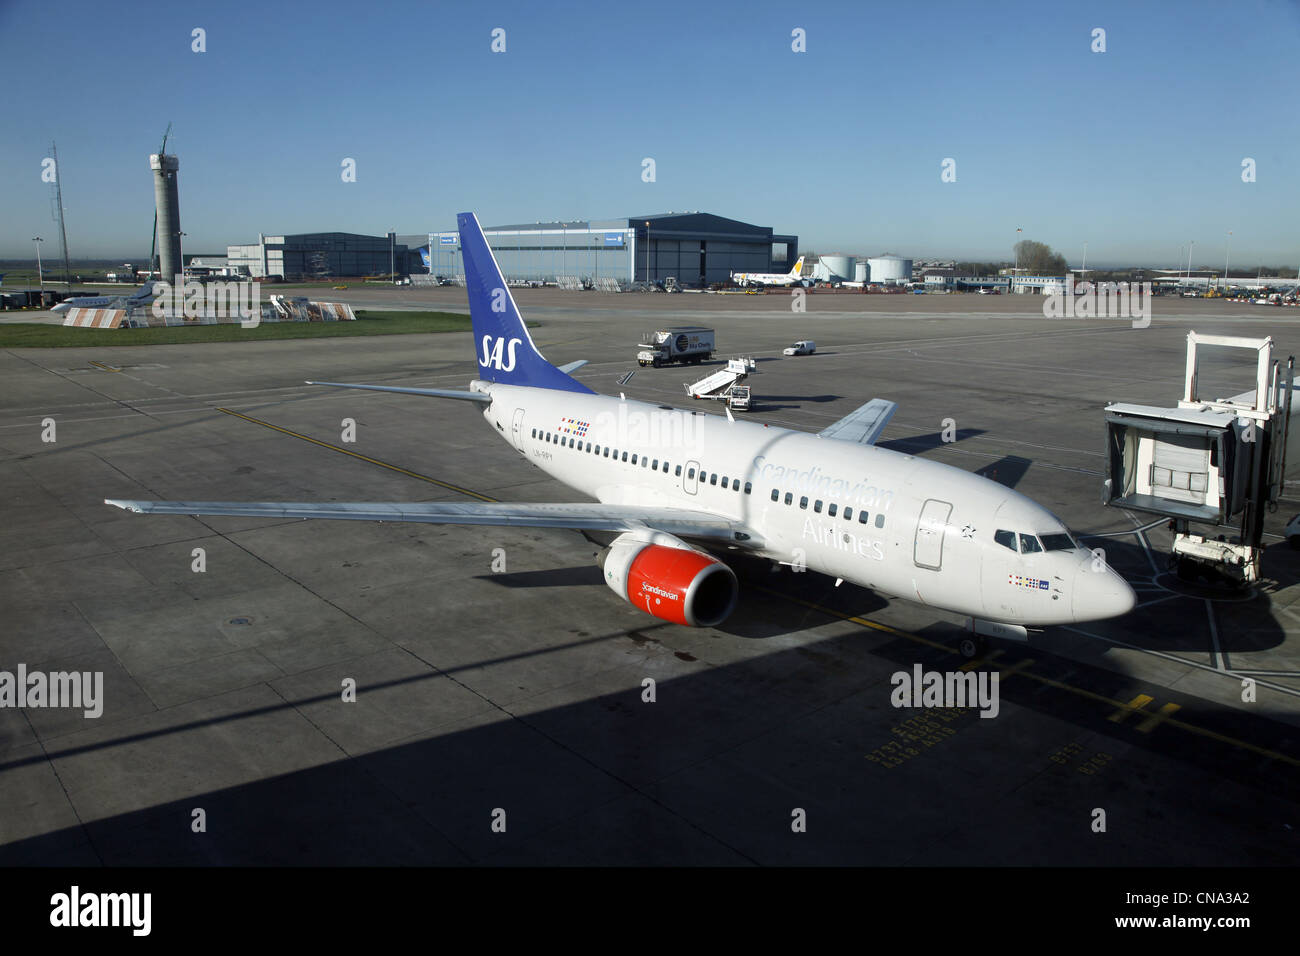 SCANDINAVIAN AIRLINES BOEING 737 MANCHESTER AIRPORT TERMINAL 1 26 March 2012 - Stock Image